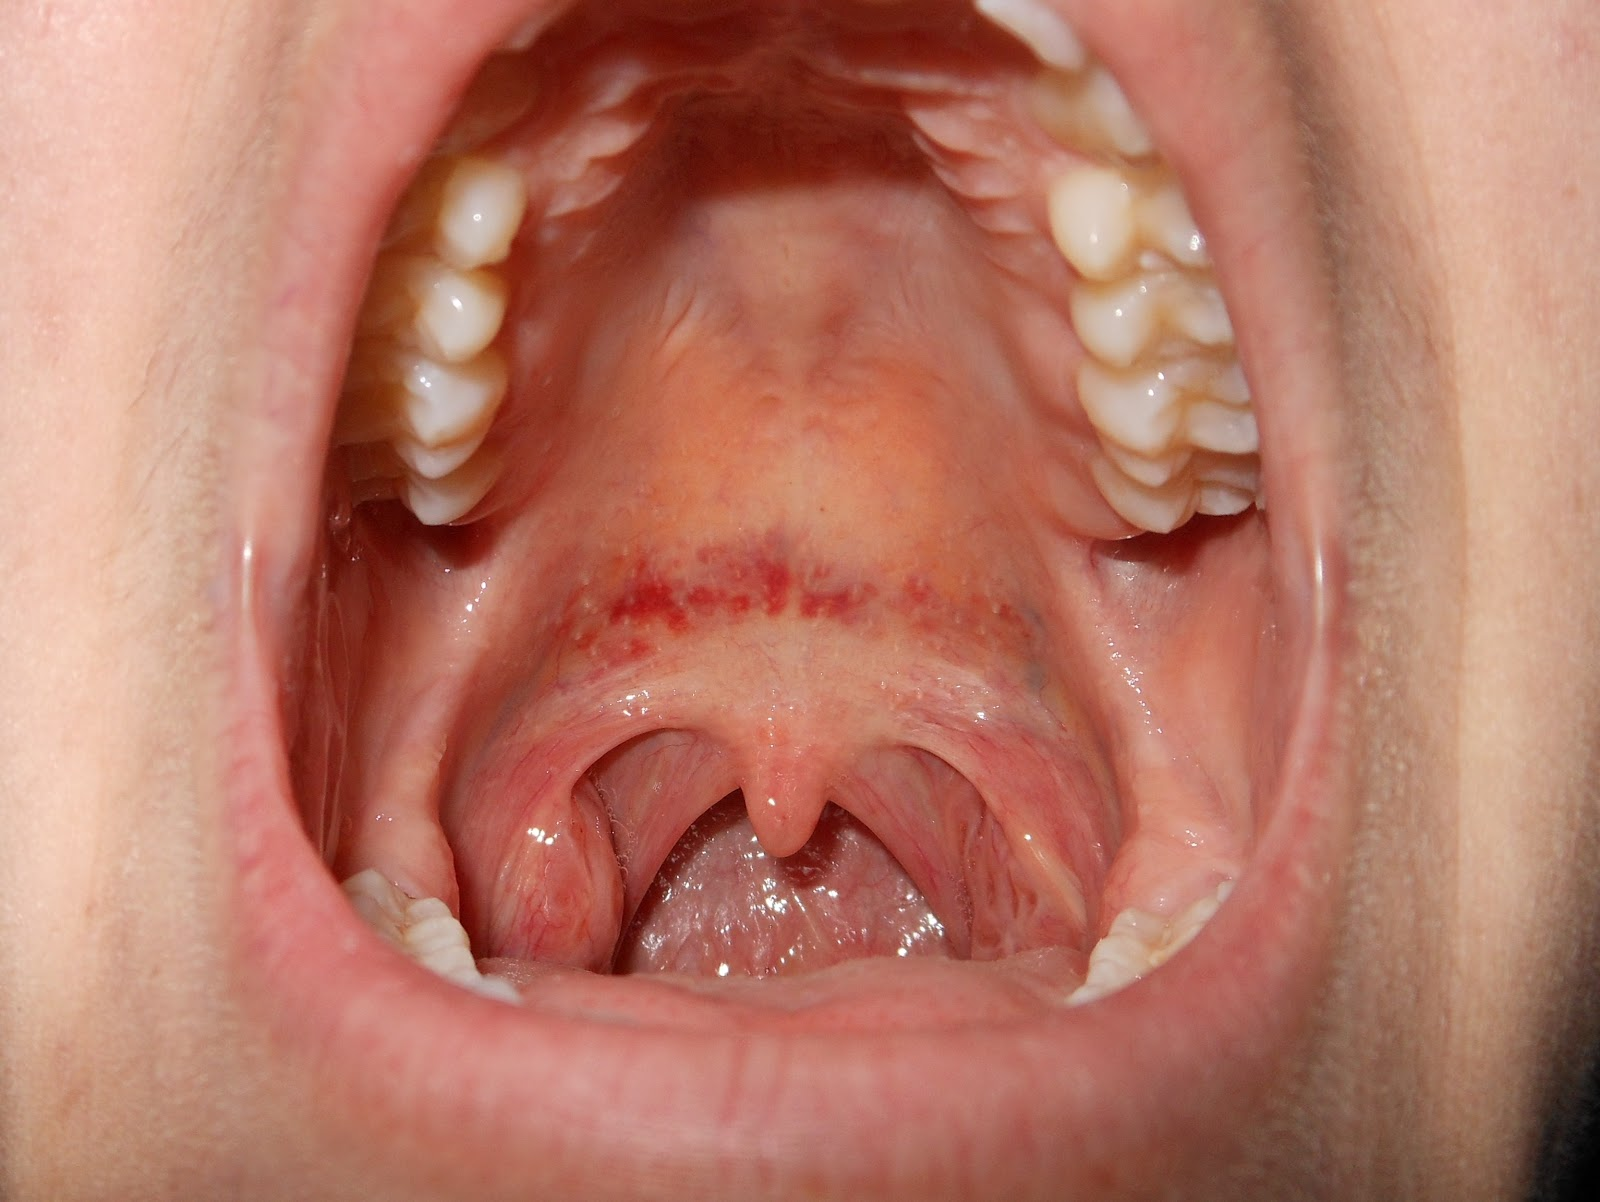 Rash Around Mouth (Lips) Causes, Pictures, Treatment ...